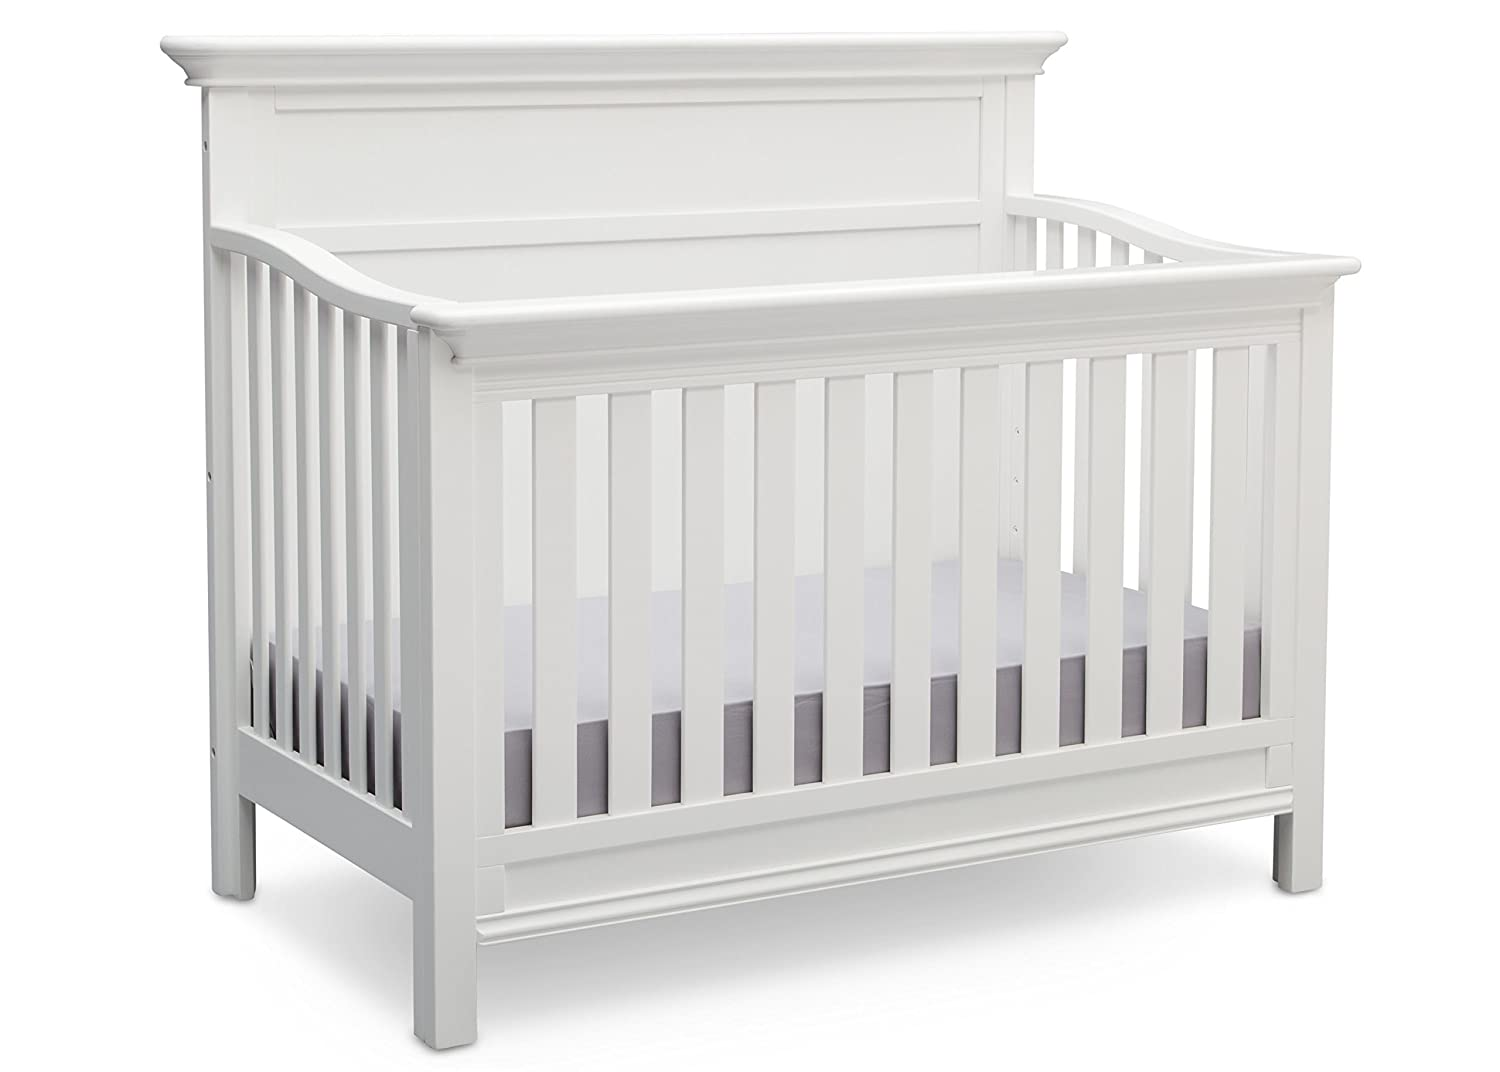 Serta Fairmount 4-in-1 Convertible Baby Crib, Bianca White